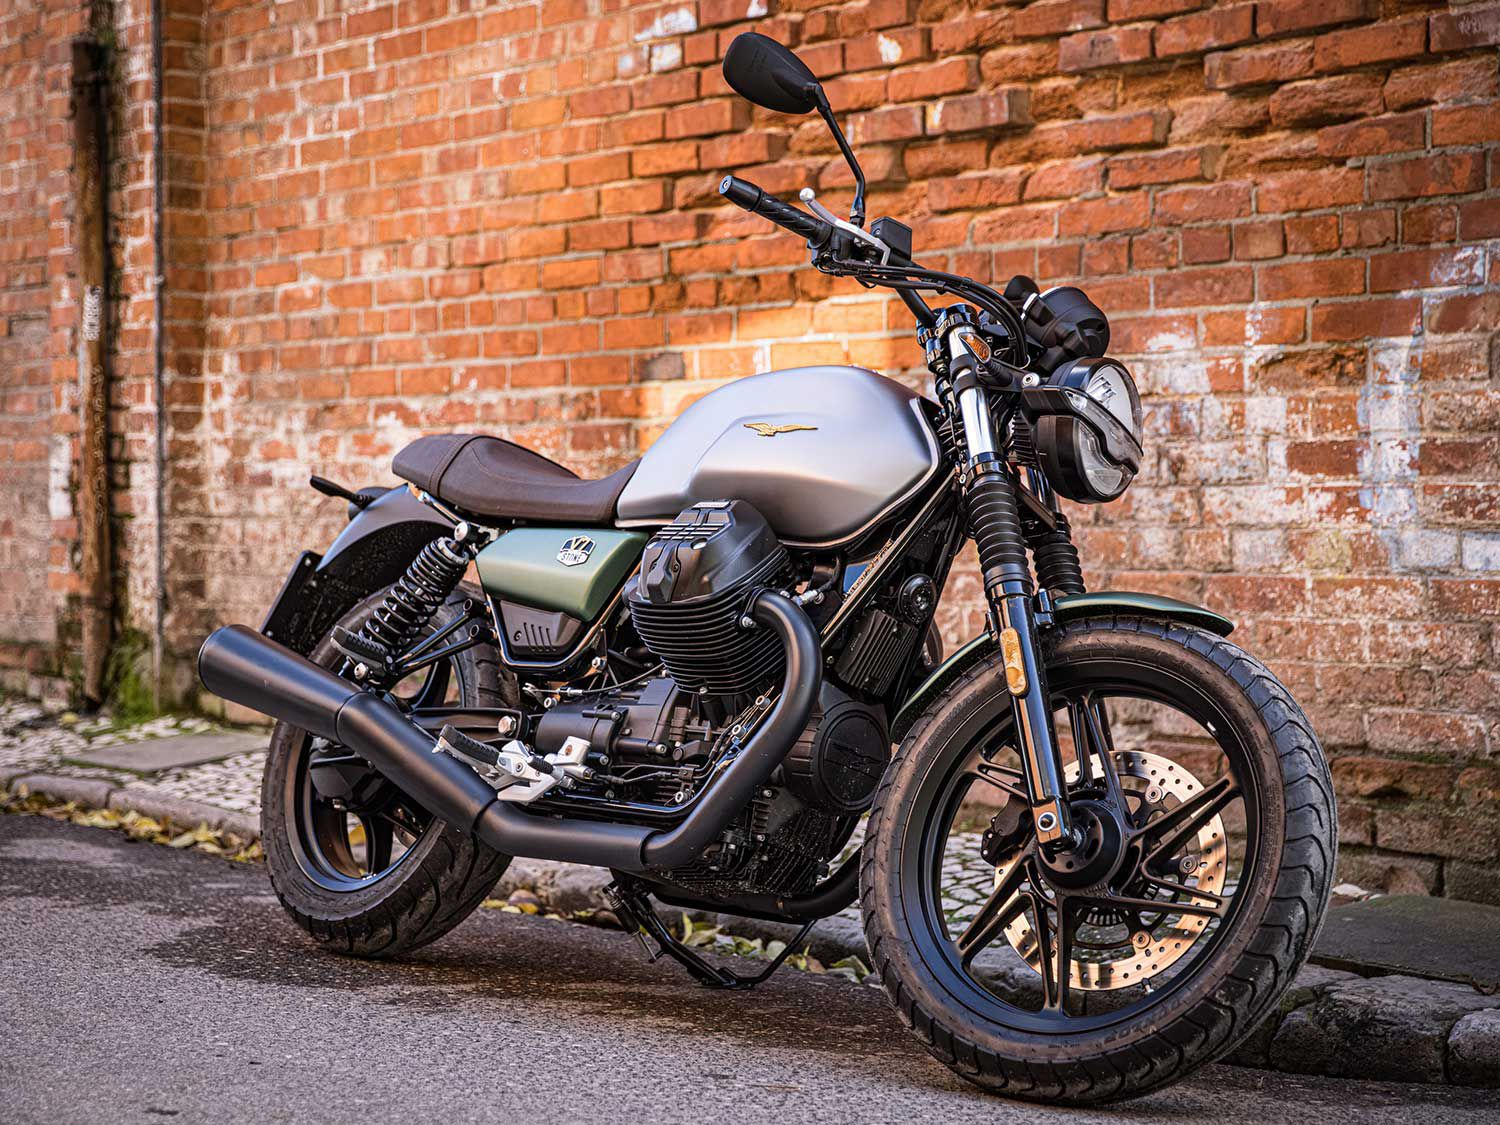 Moto Guzzi introduces a special-edition V7 Stone Anniversary model to mark the brand?s 100th birthday.